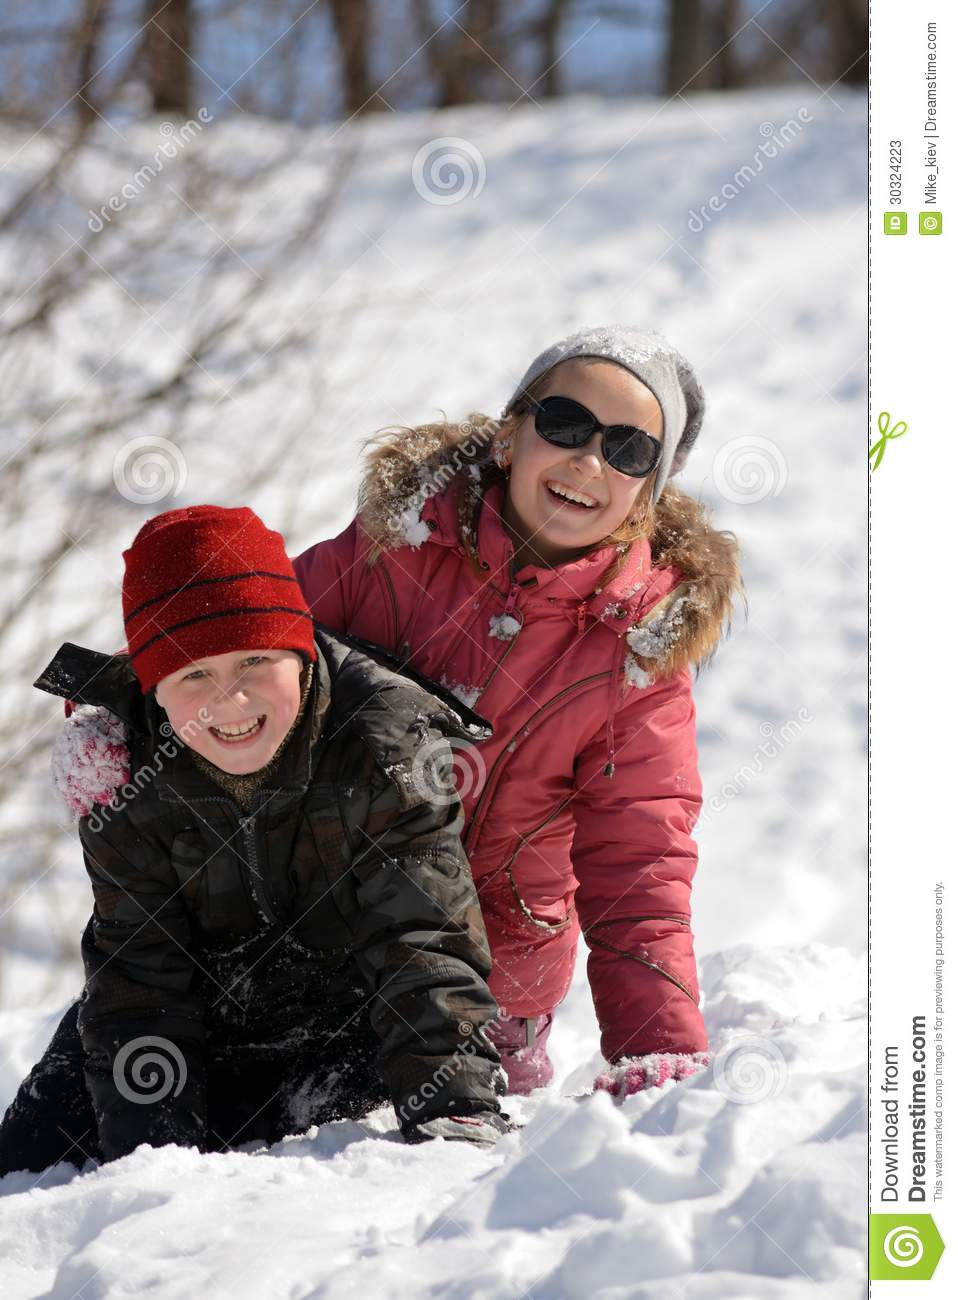 Children playing in snow stock photos image 30324223 for Vacation in the snow